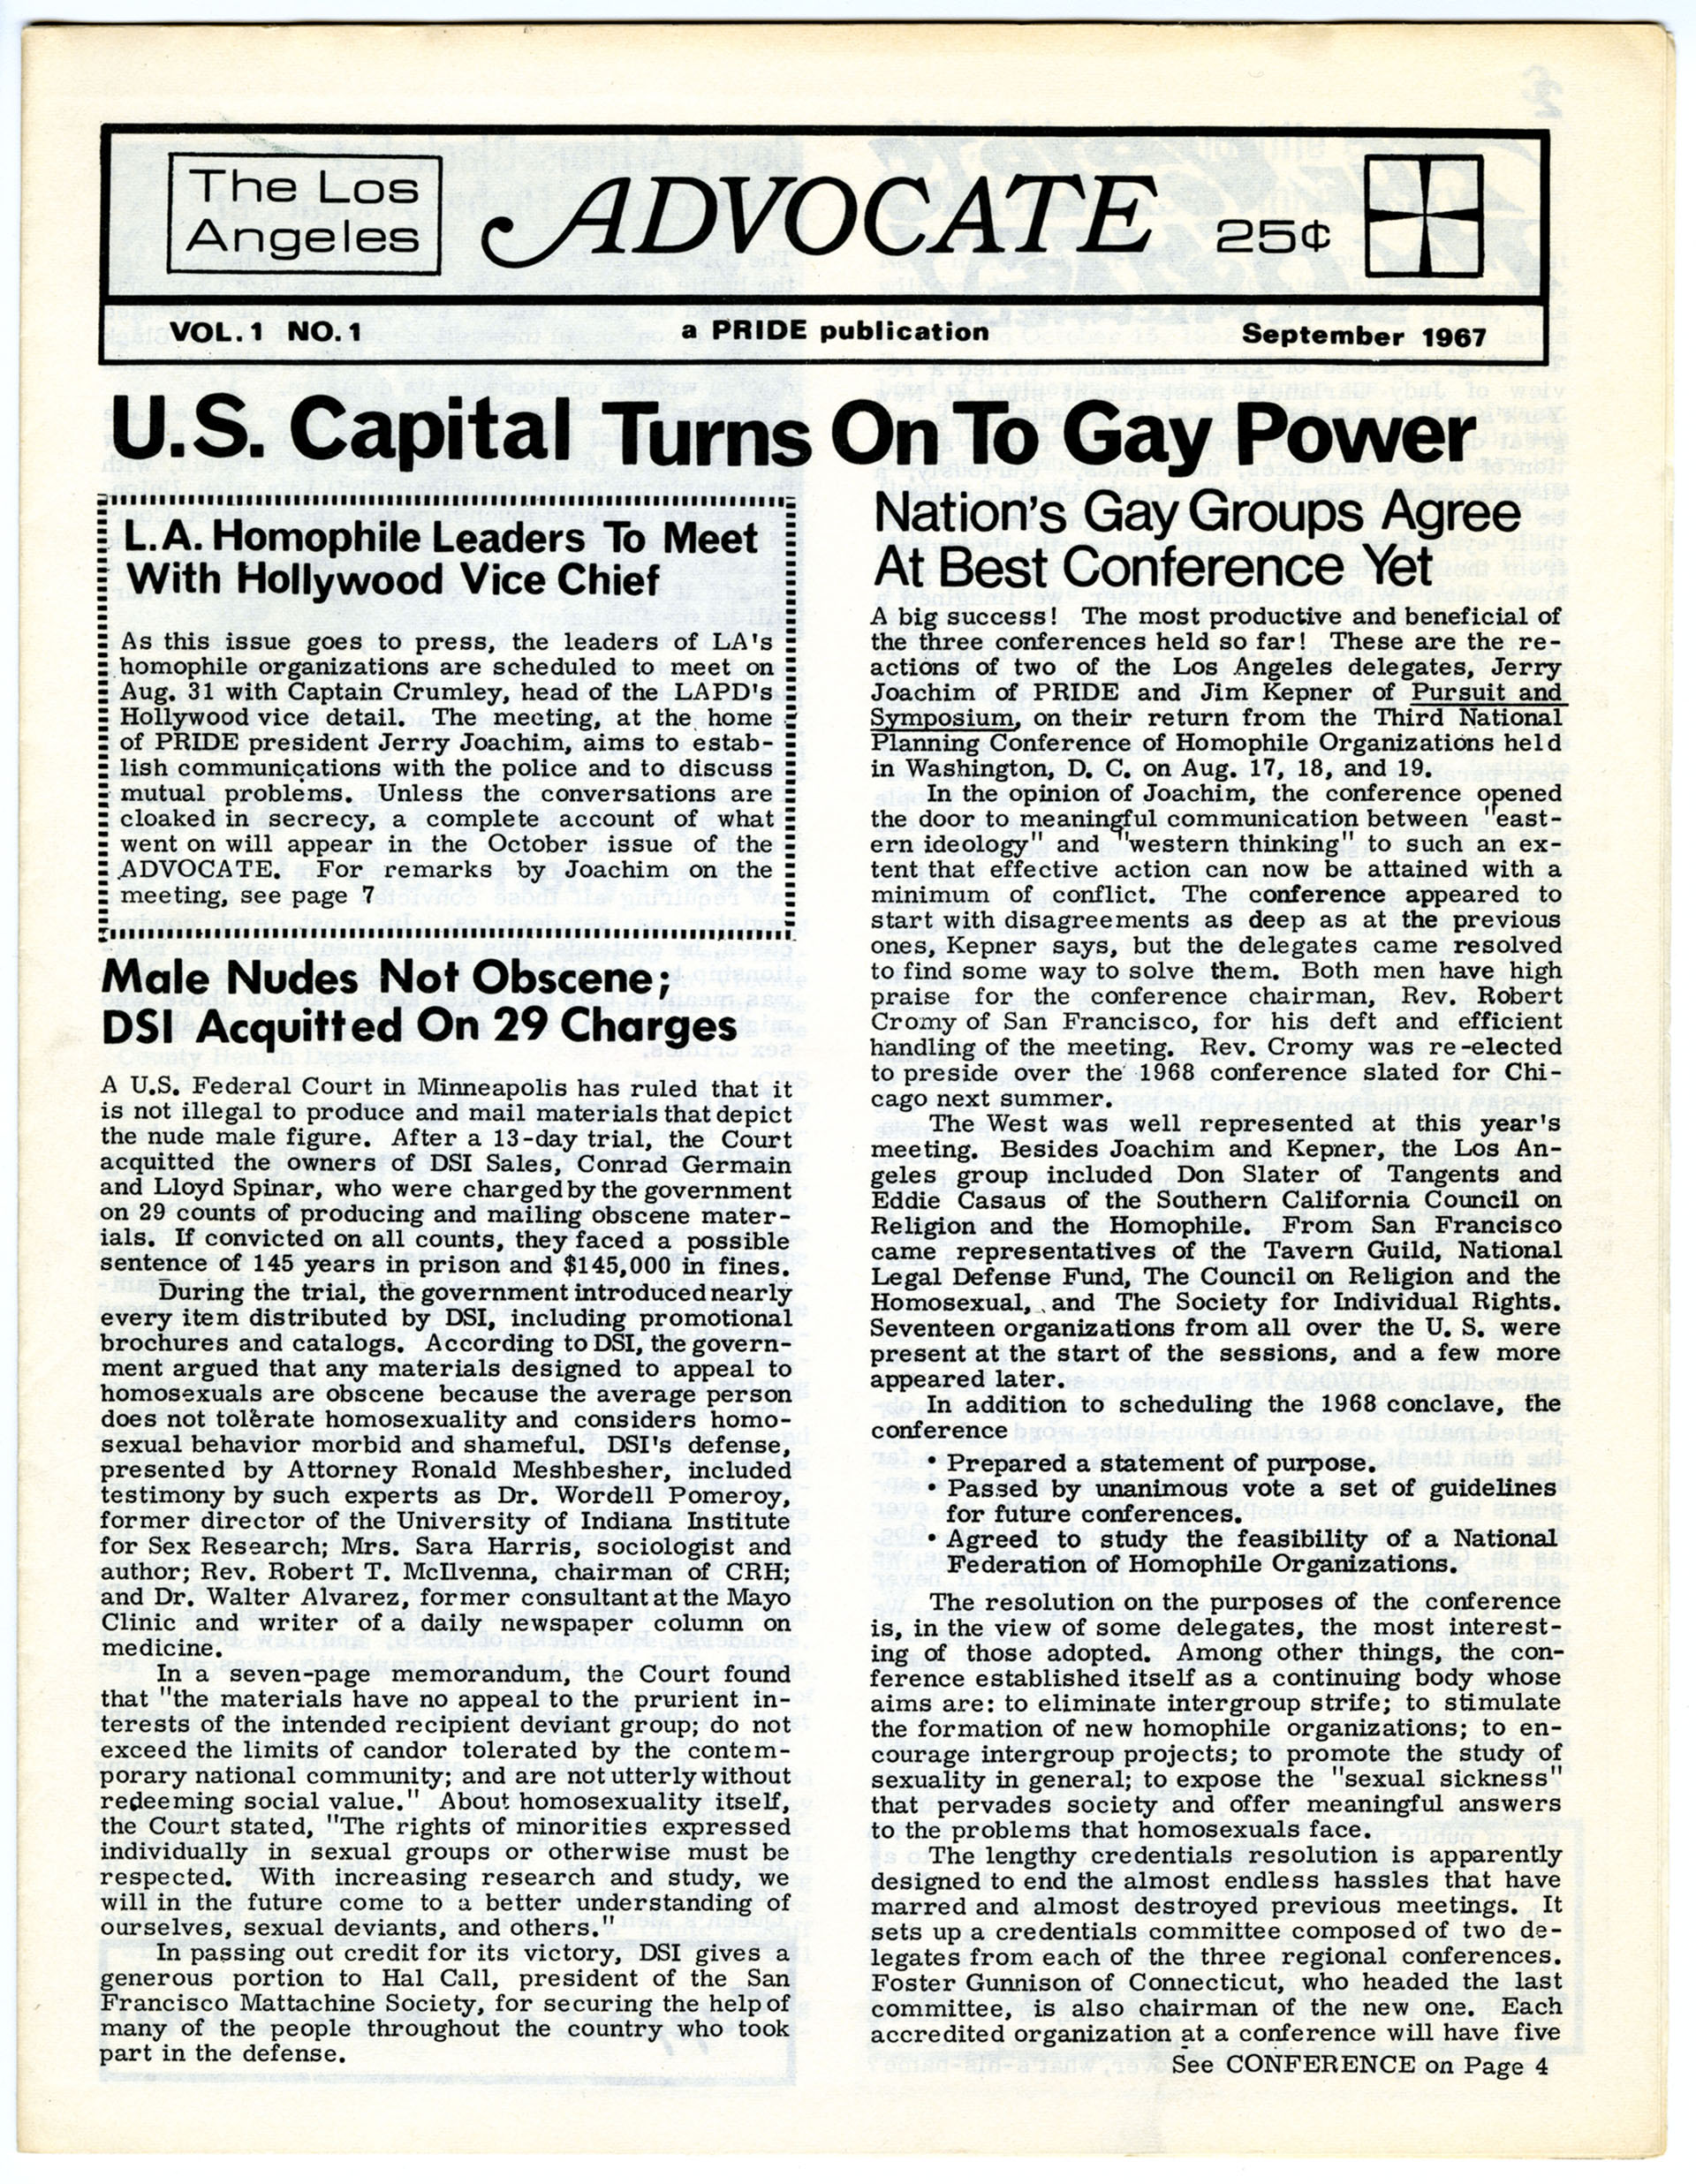 The first issue of the Los Angeles Advocate (later The Advocate), September 1967